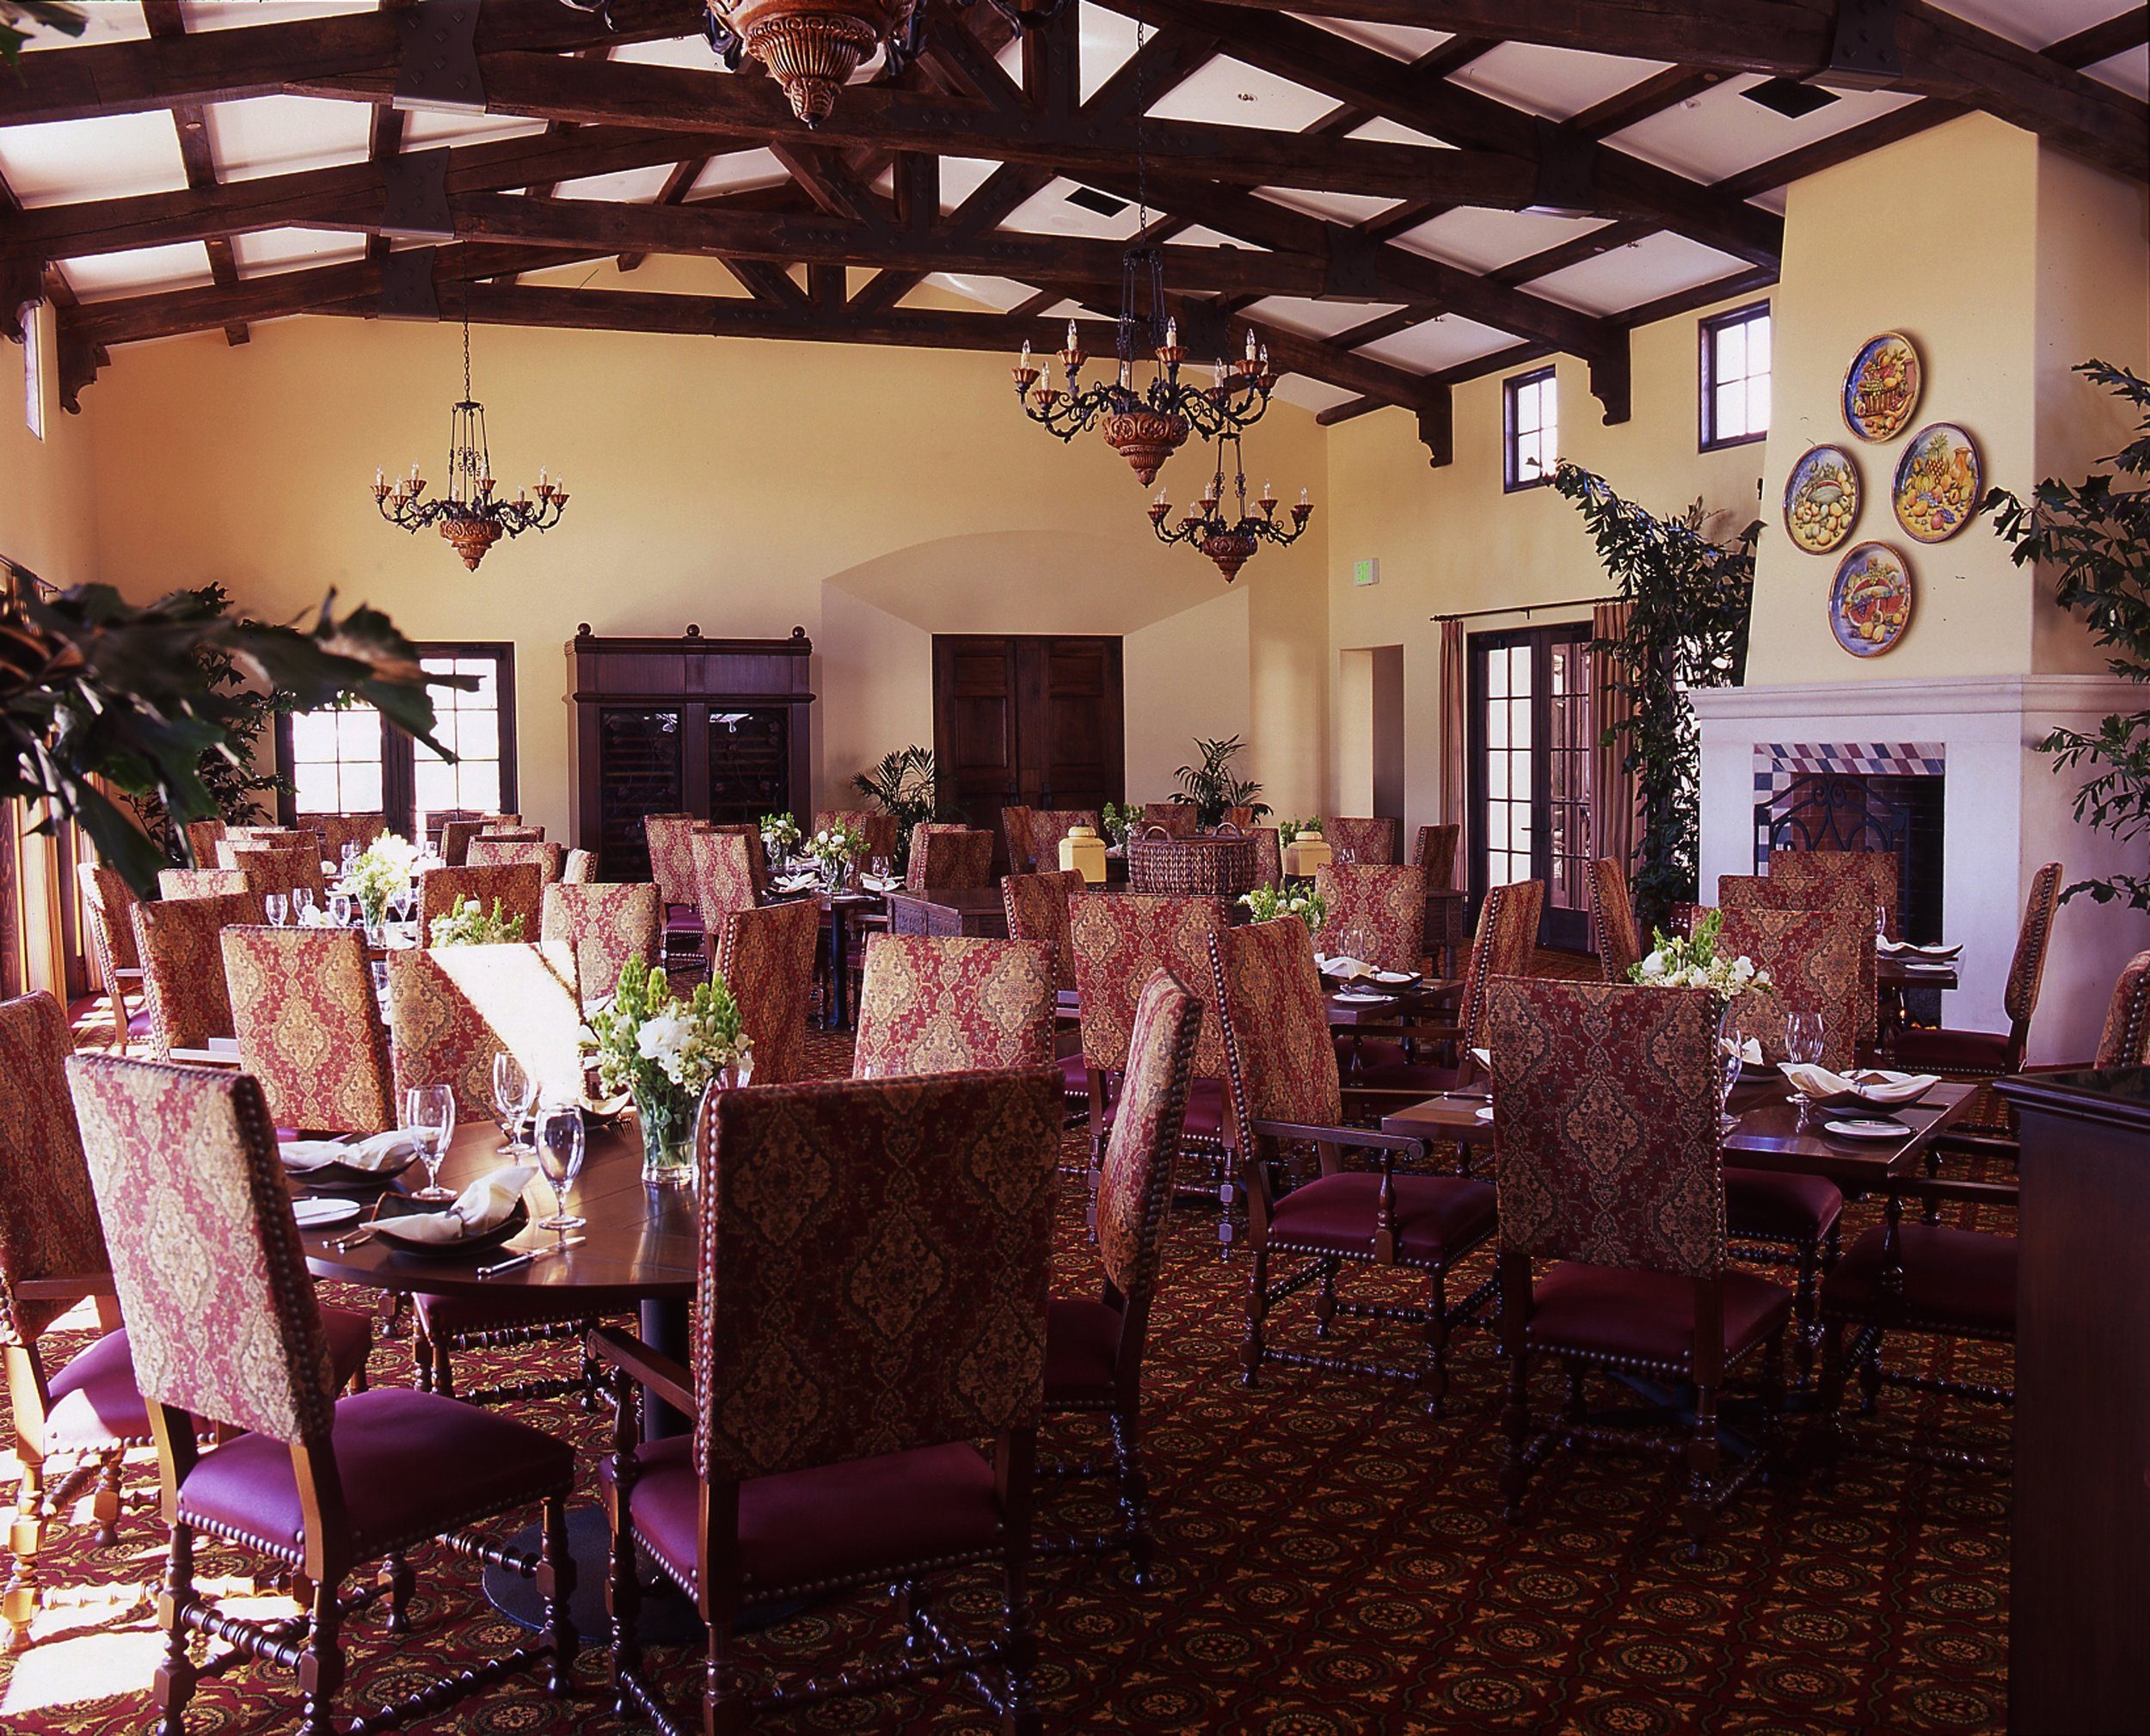 The Crosby Club: Dining Room